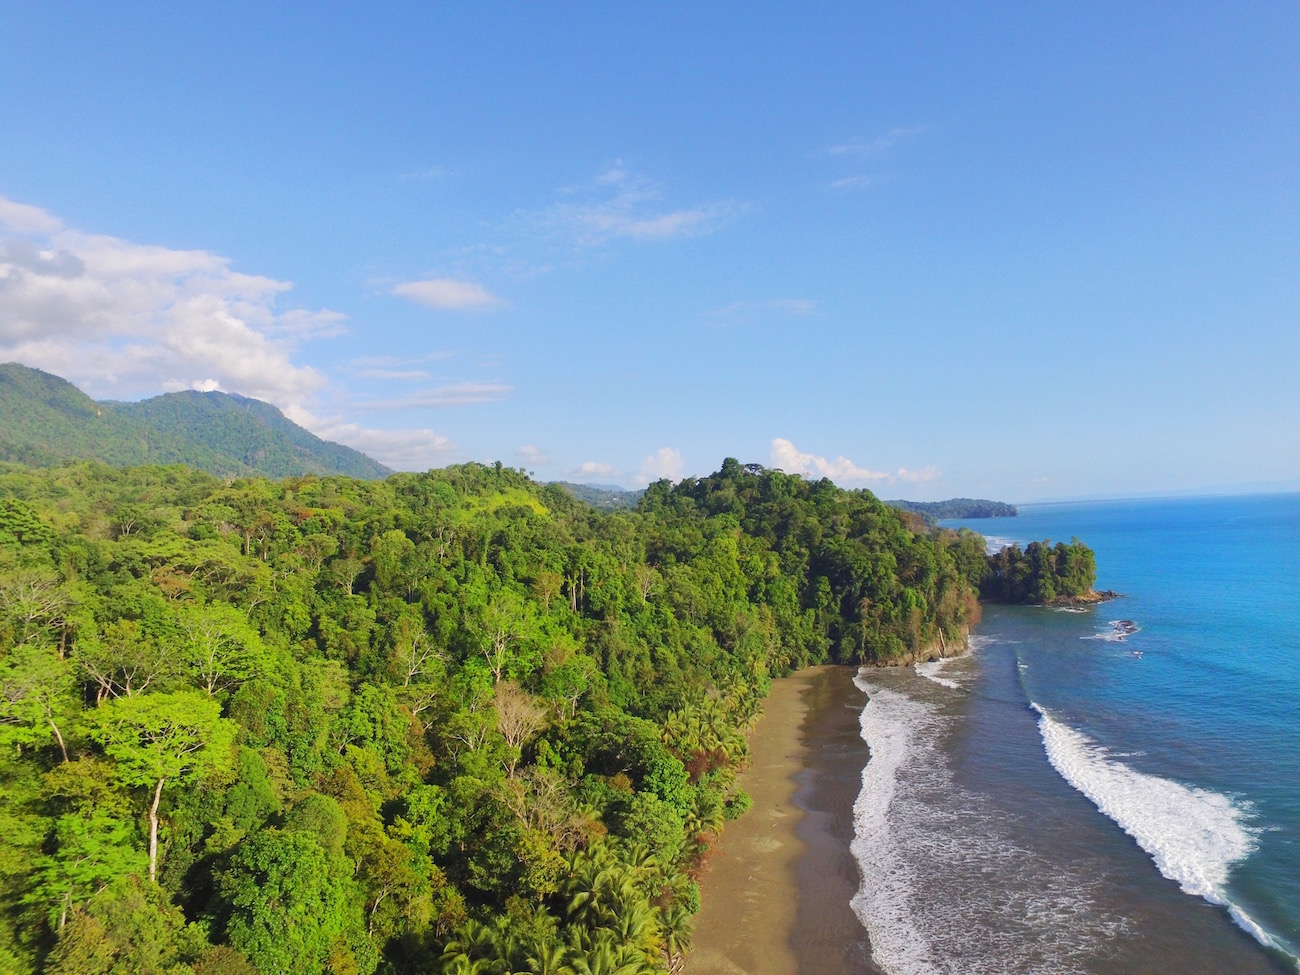 Jungle meets beach in Costa Rica. One of the best things to do in Costa Rica.   Tessa Juliette | Travel Where to Next http://travelwheretonext.com